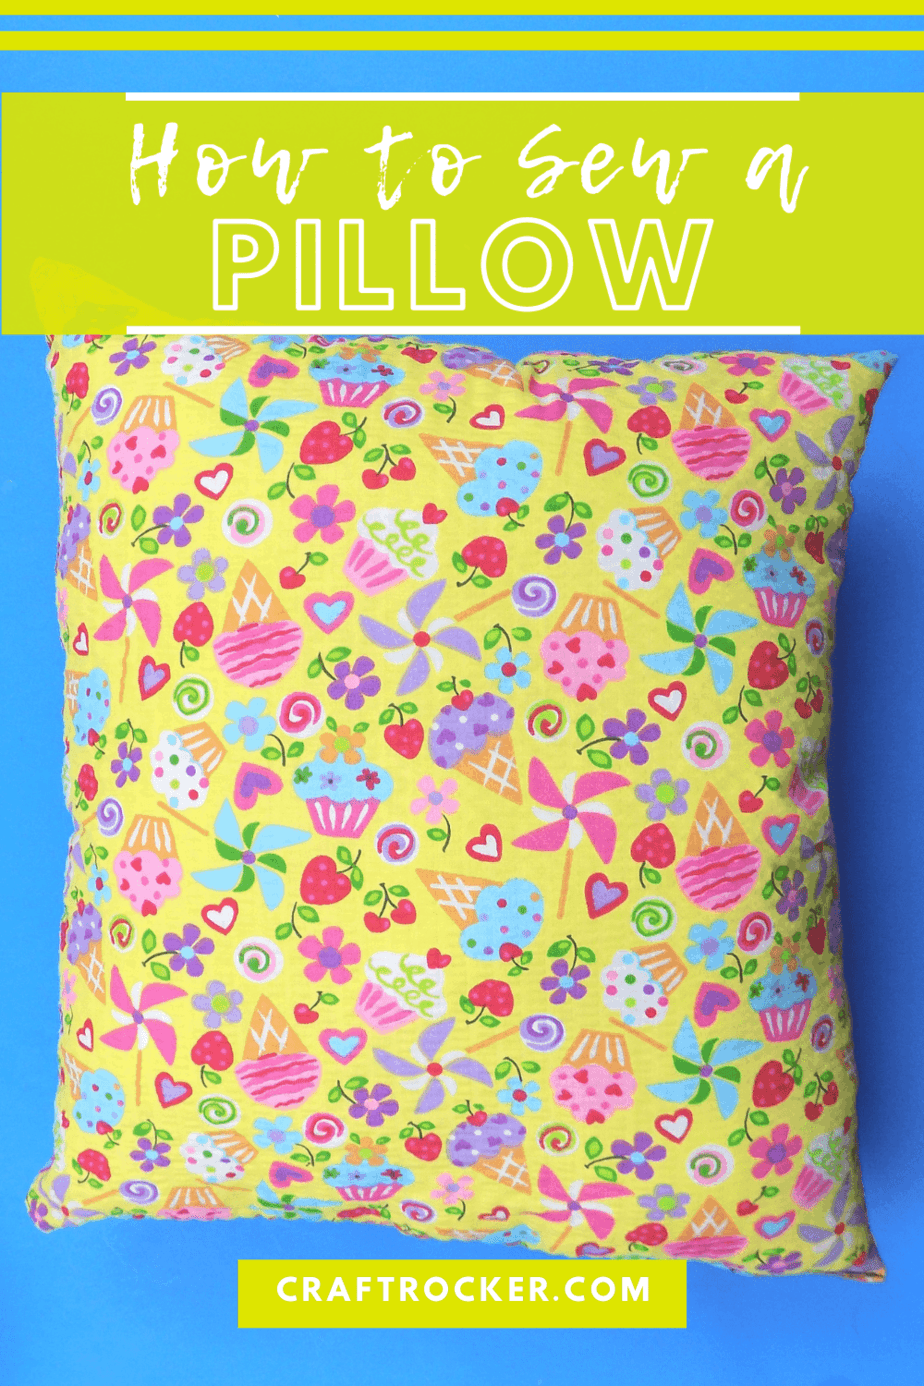 Colorful Pillow on Blue Background with text overlay - How to Sew a Pillow - Craft Rocker